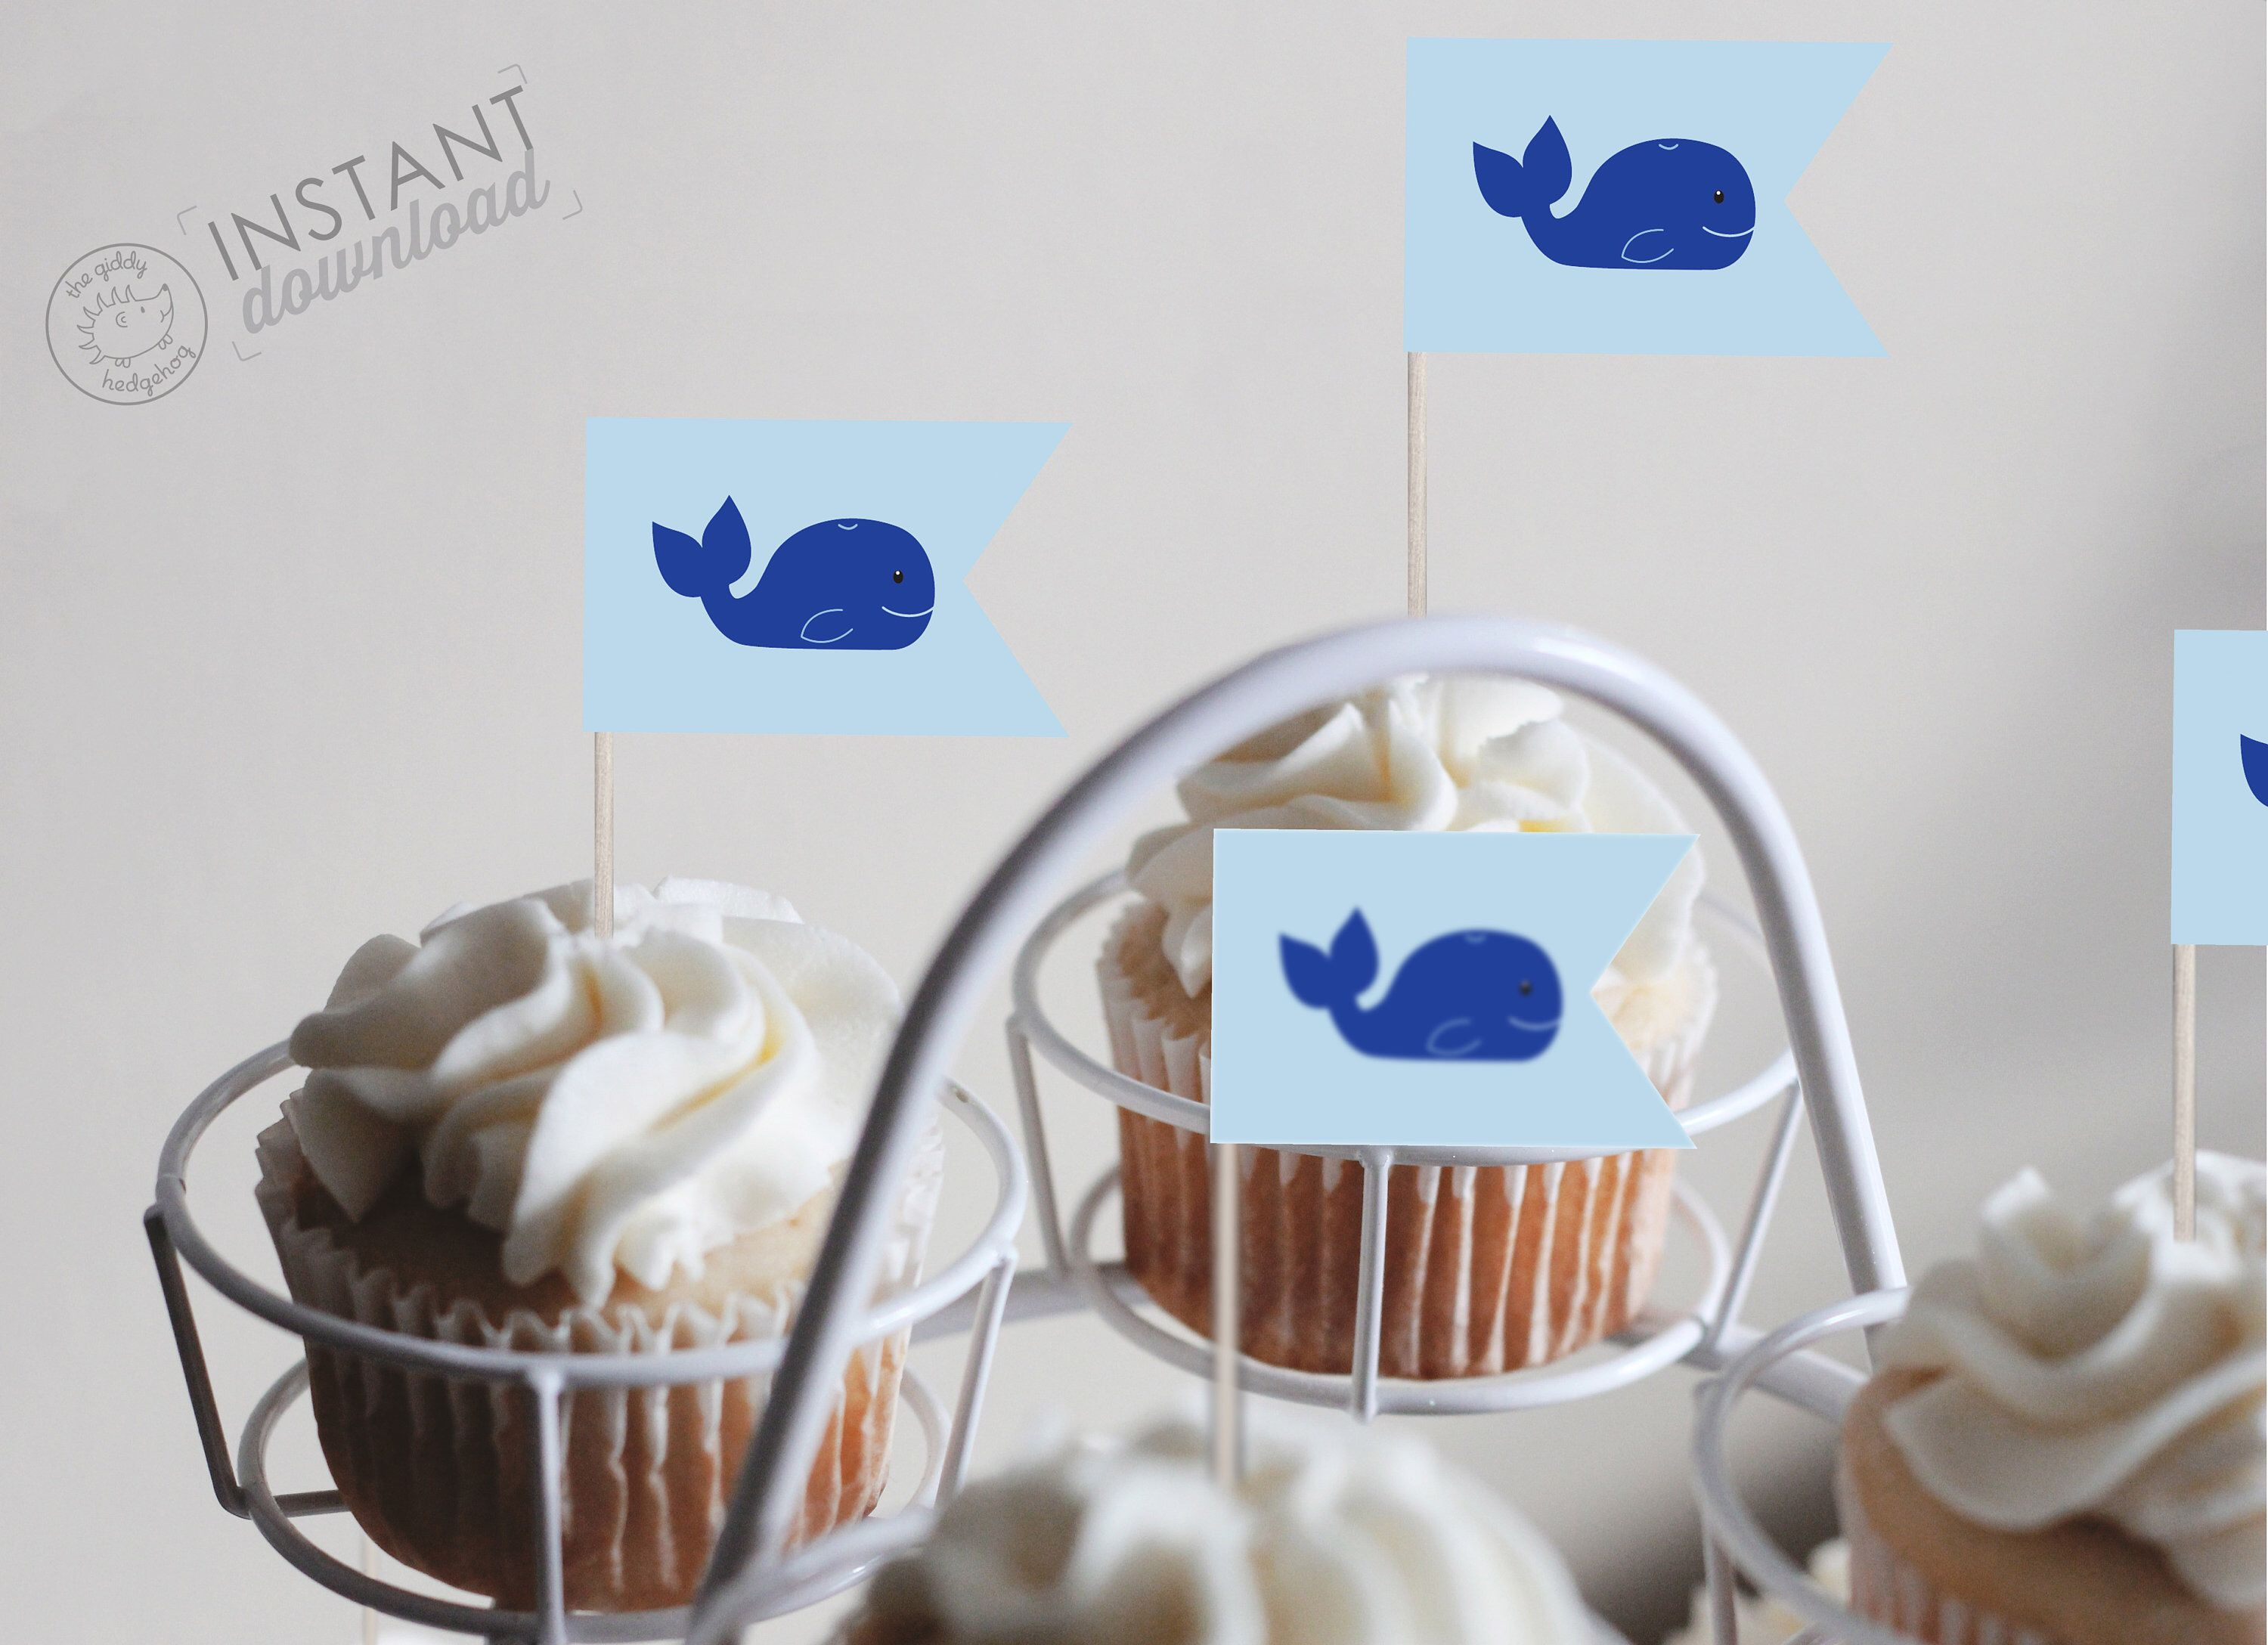 Diy Printable Whale Cupcake Topper Decorations Cake Pop Sticks Under